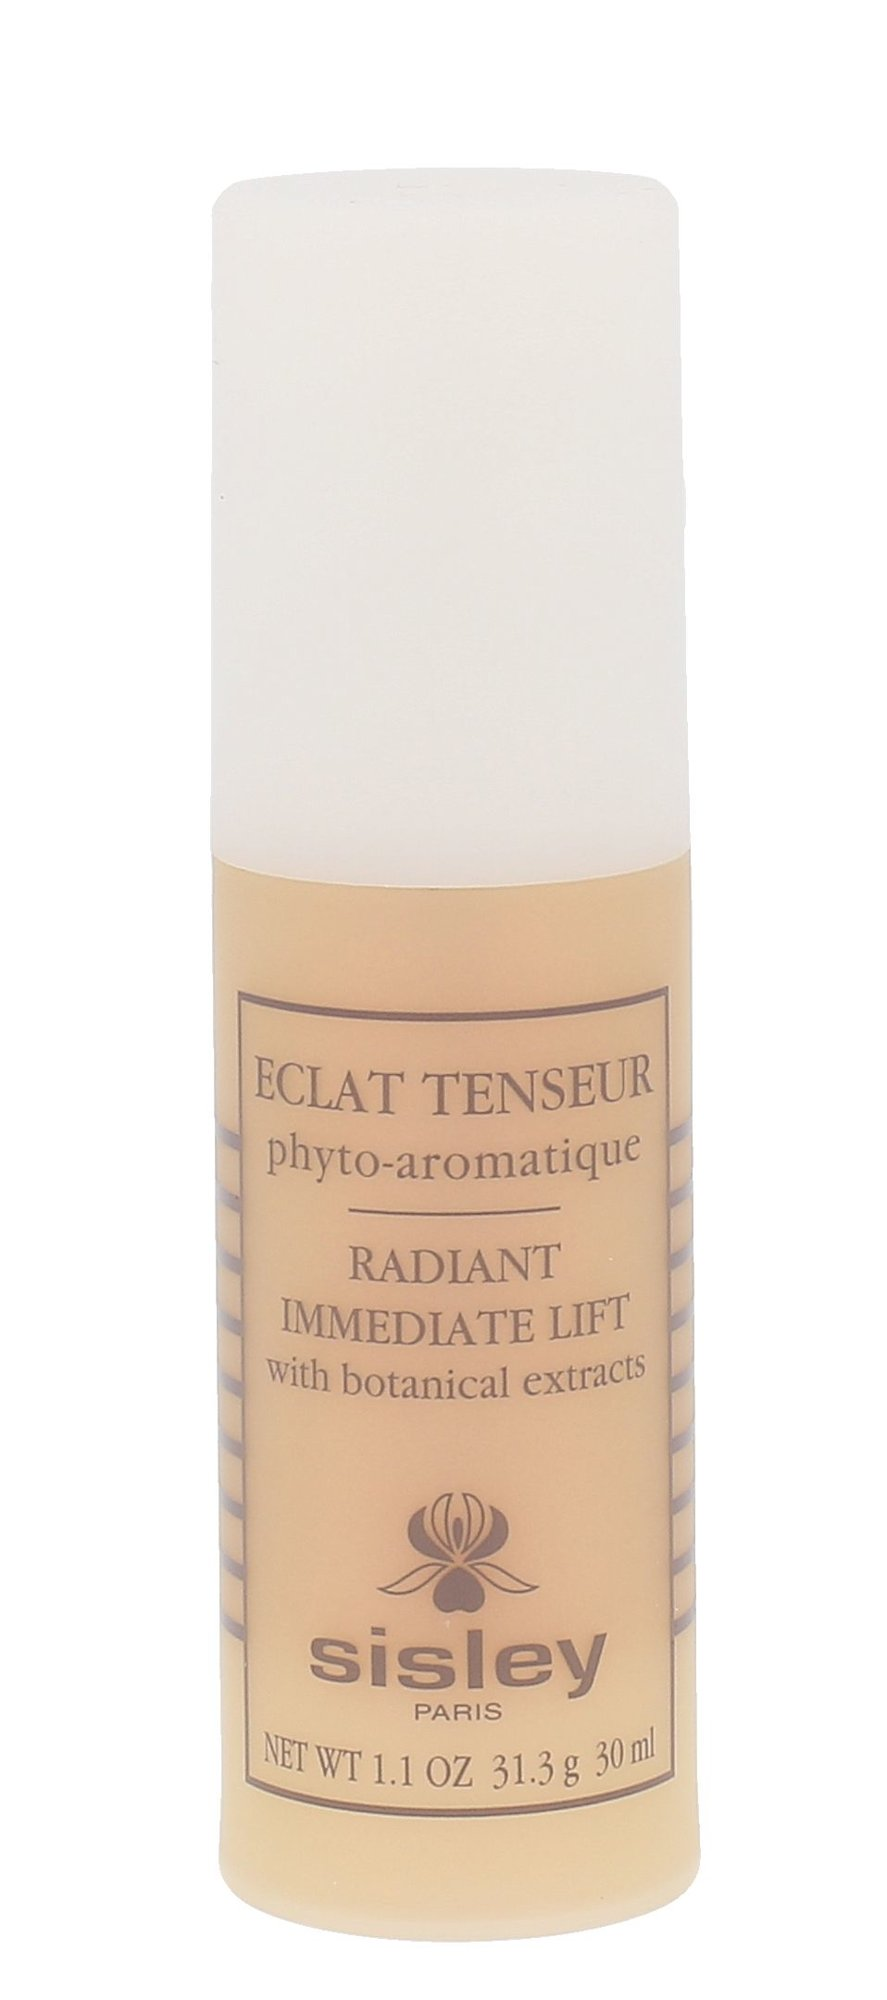 Sisley Radiant Immediate Lift Cosmetic 30ml